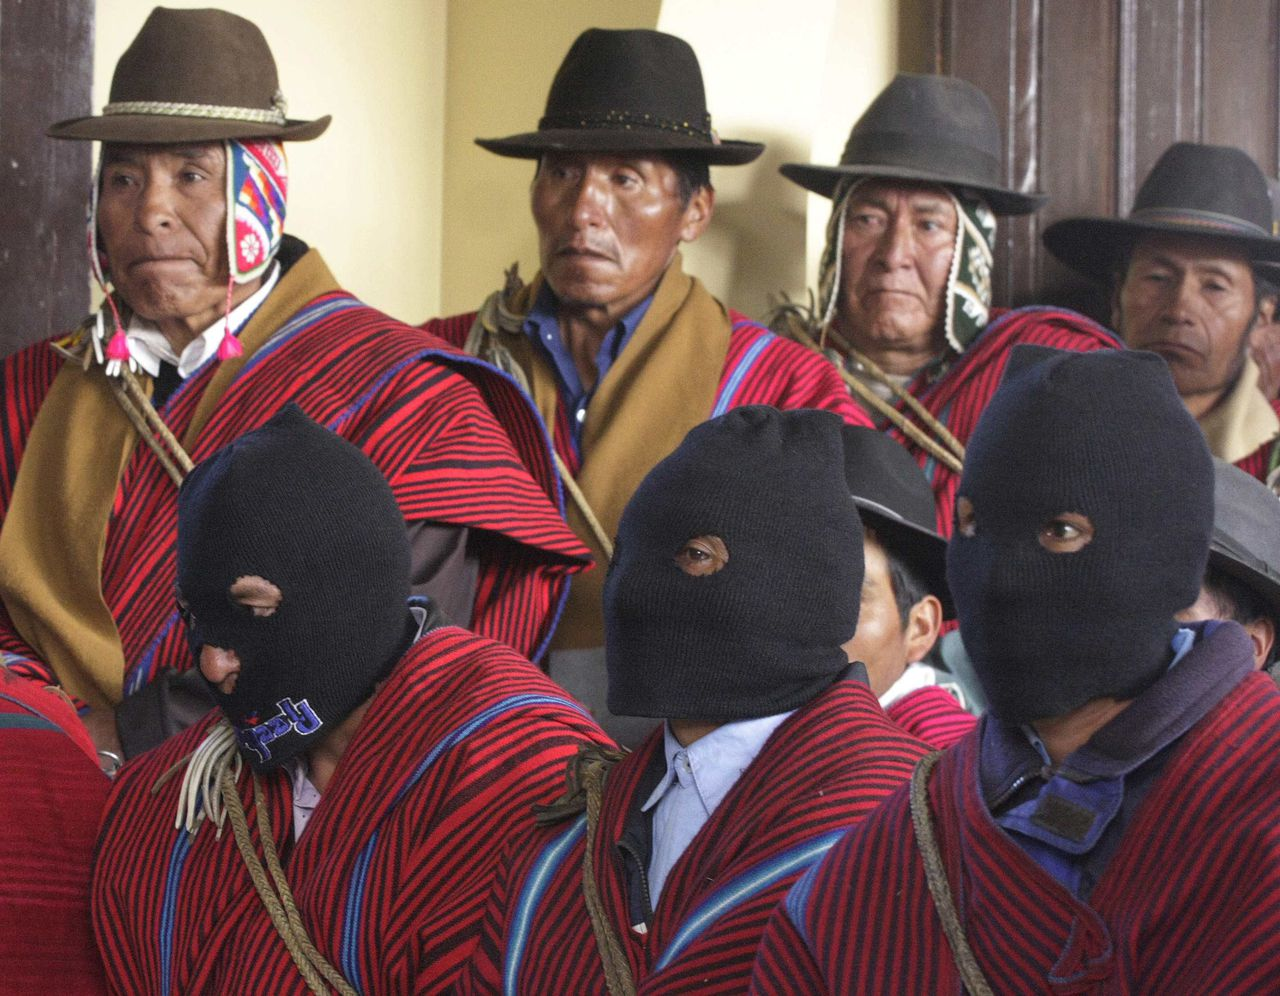 De Ponchos Rojos op een bijeenkomst vorige maand waar zij wapens inleverden in ruil voor vee. Foto AFP Masked members of the Ponchos Rojos pressure group aligned with Bolivia's leftist President Evo Morales attend a meeting with government officials in Ancoraimes, about 180 km (110 miles) north of La Paz, July 9, 2008. The Ponchos Rojos offered to relinquish their weapons to Bolivian army officers as a sign that they do not intend to battle with Morales' opponents in the relatively-prosperous east of the country. REUTERS/Gaston Brito (BOLIVIA)